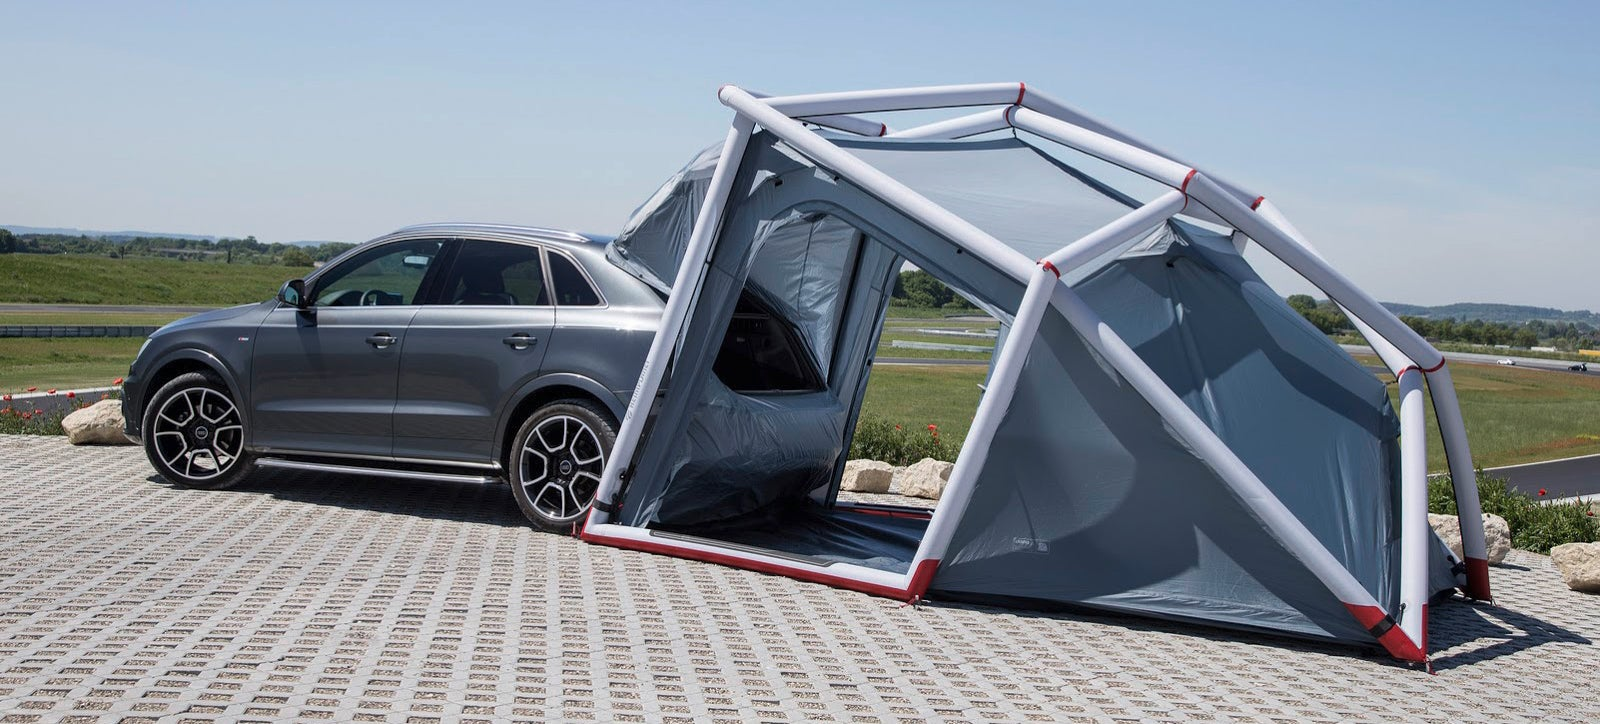 This Inflatable Tent Makes the Car Part of the Canopy